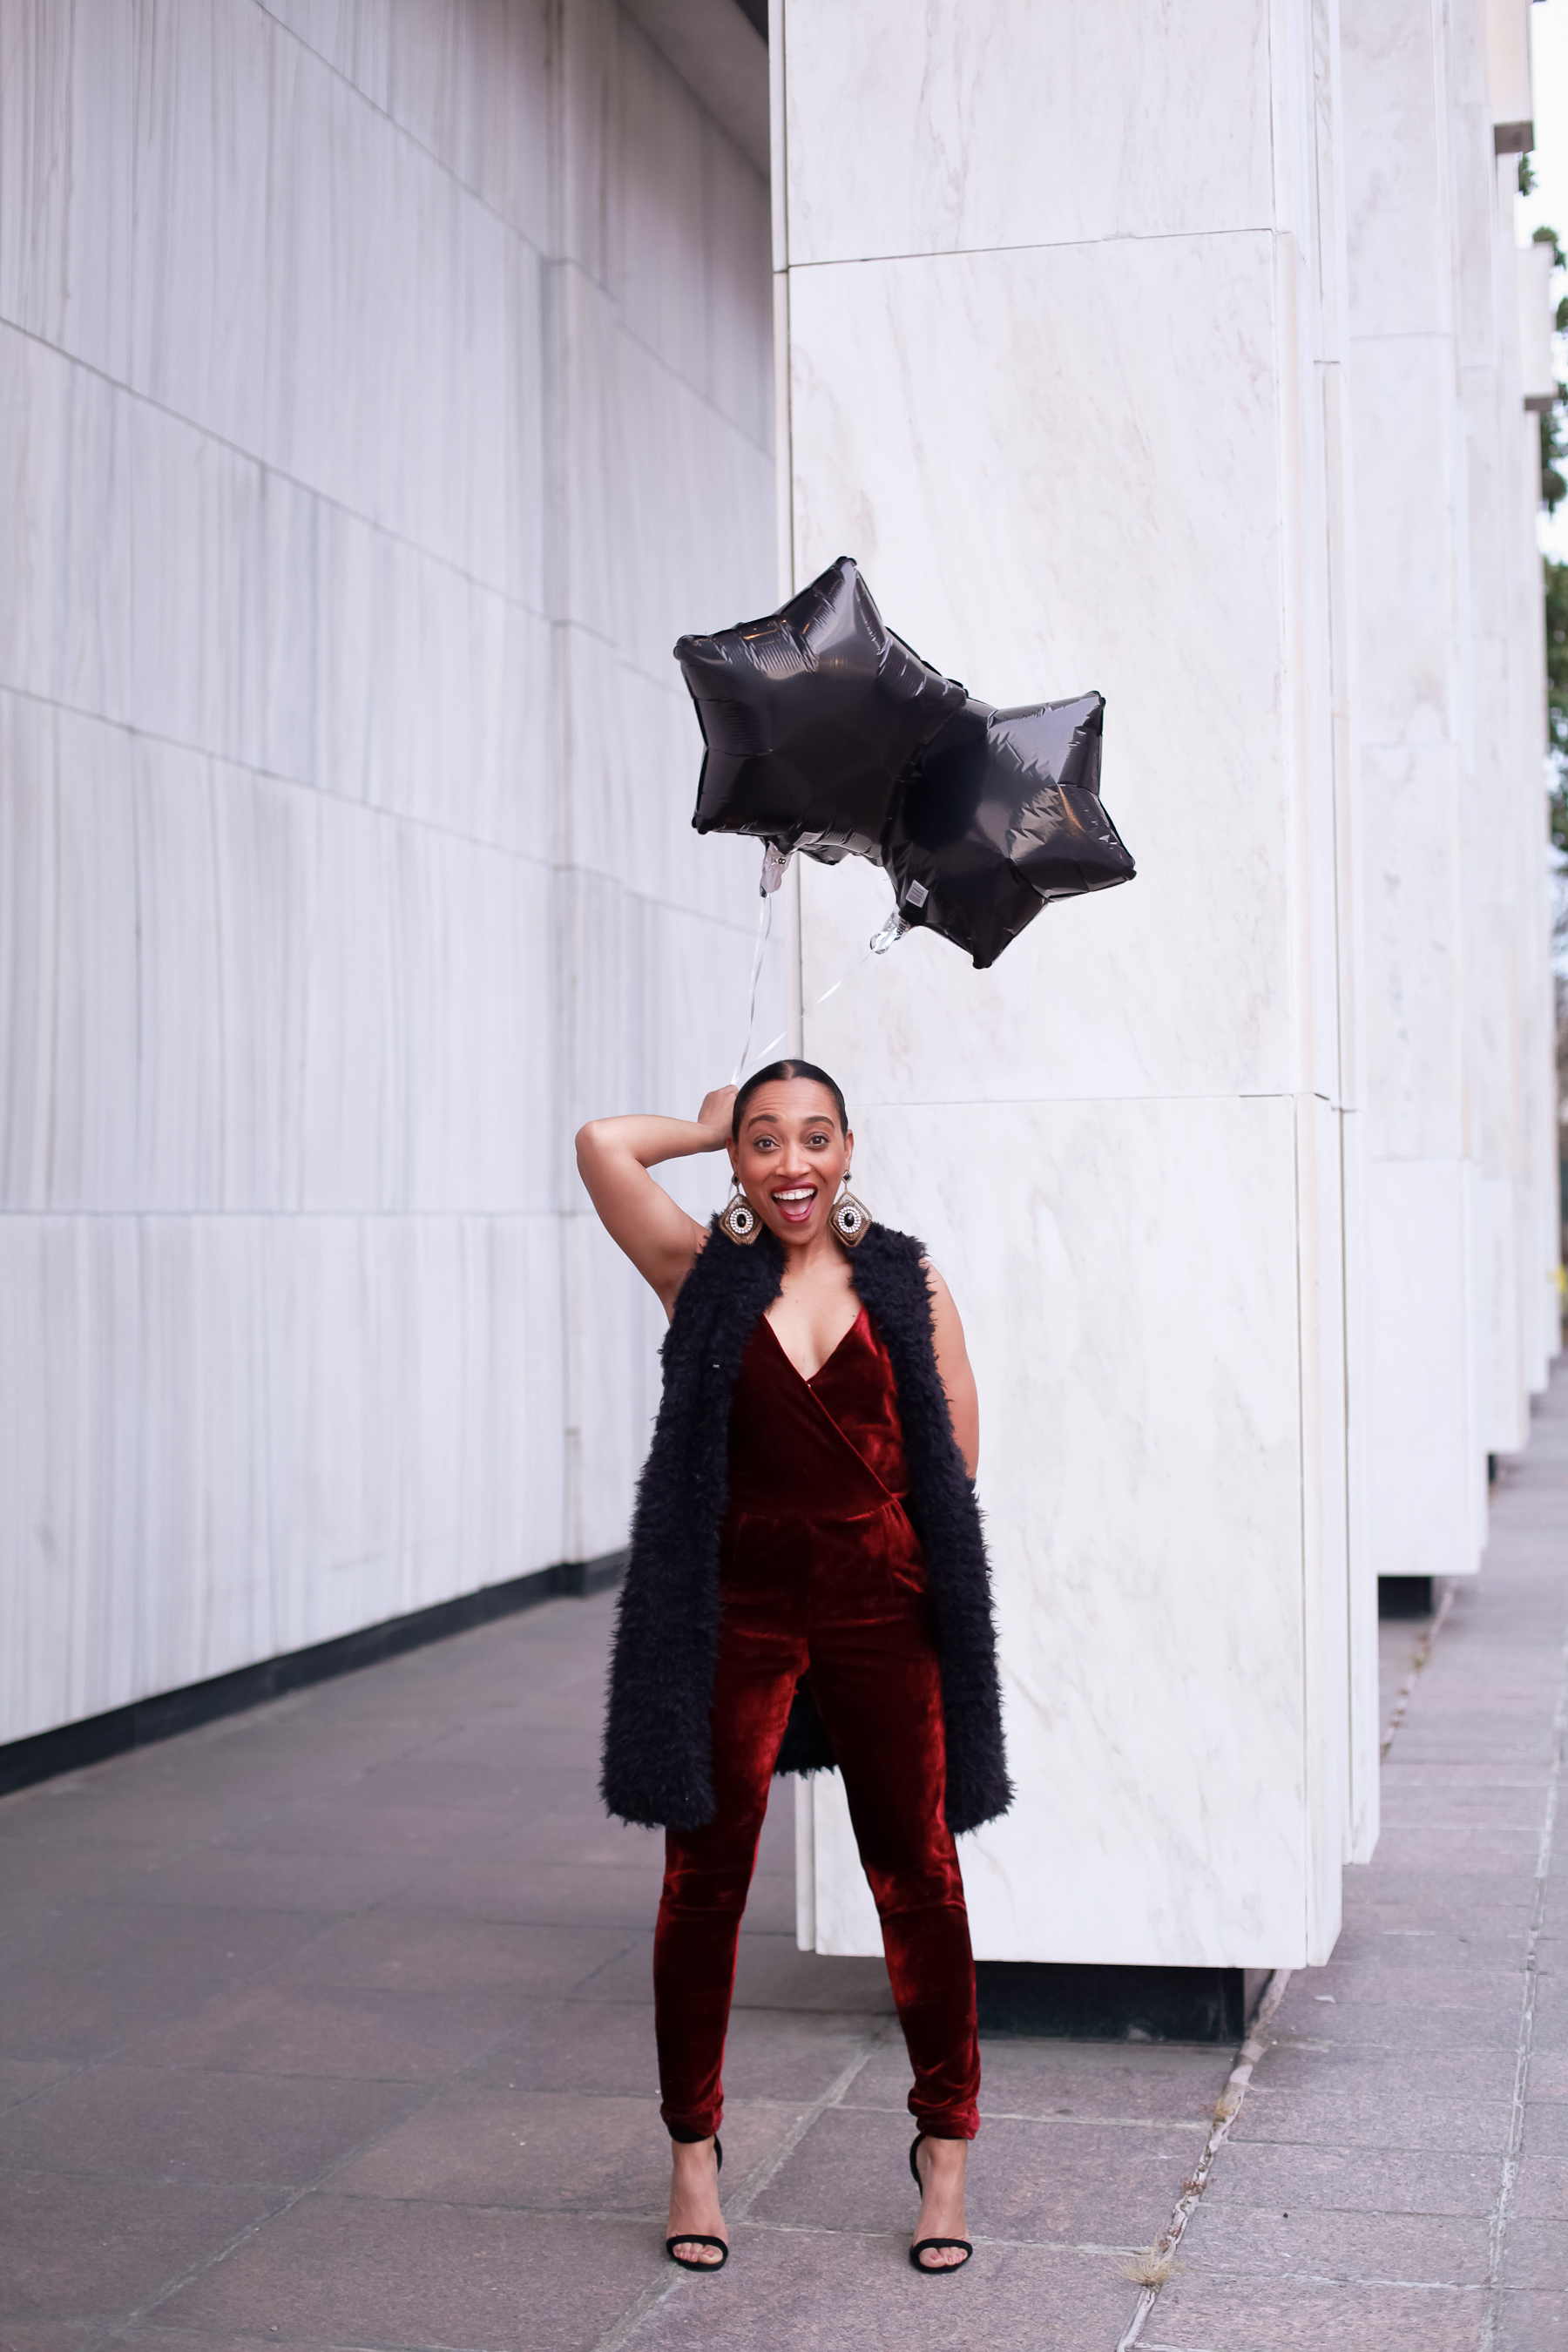 Andrea Fenise Memphis Fashion Blogger shares a weekly #40before40 series installment